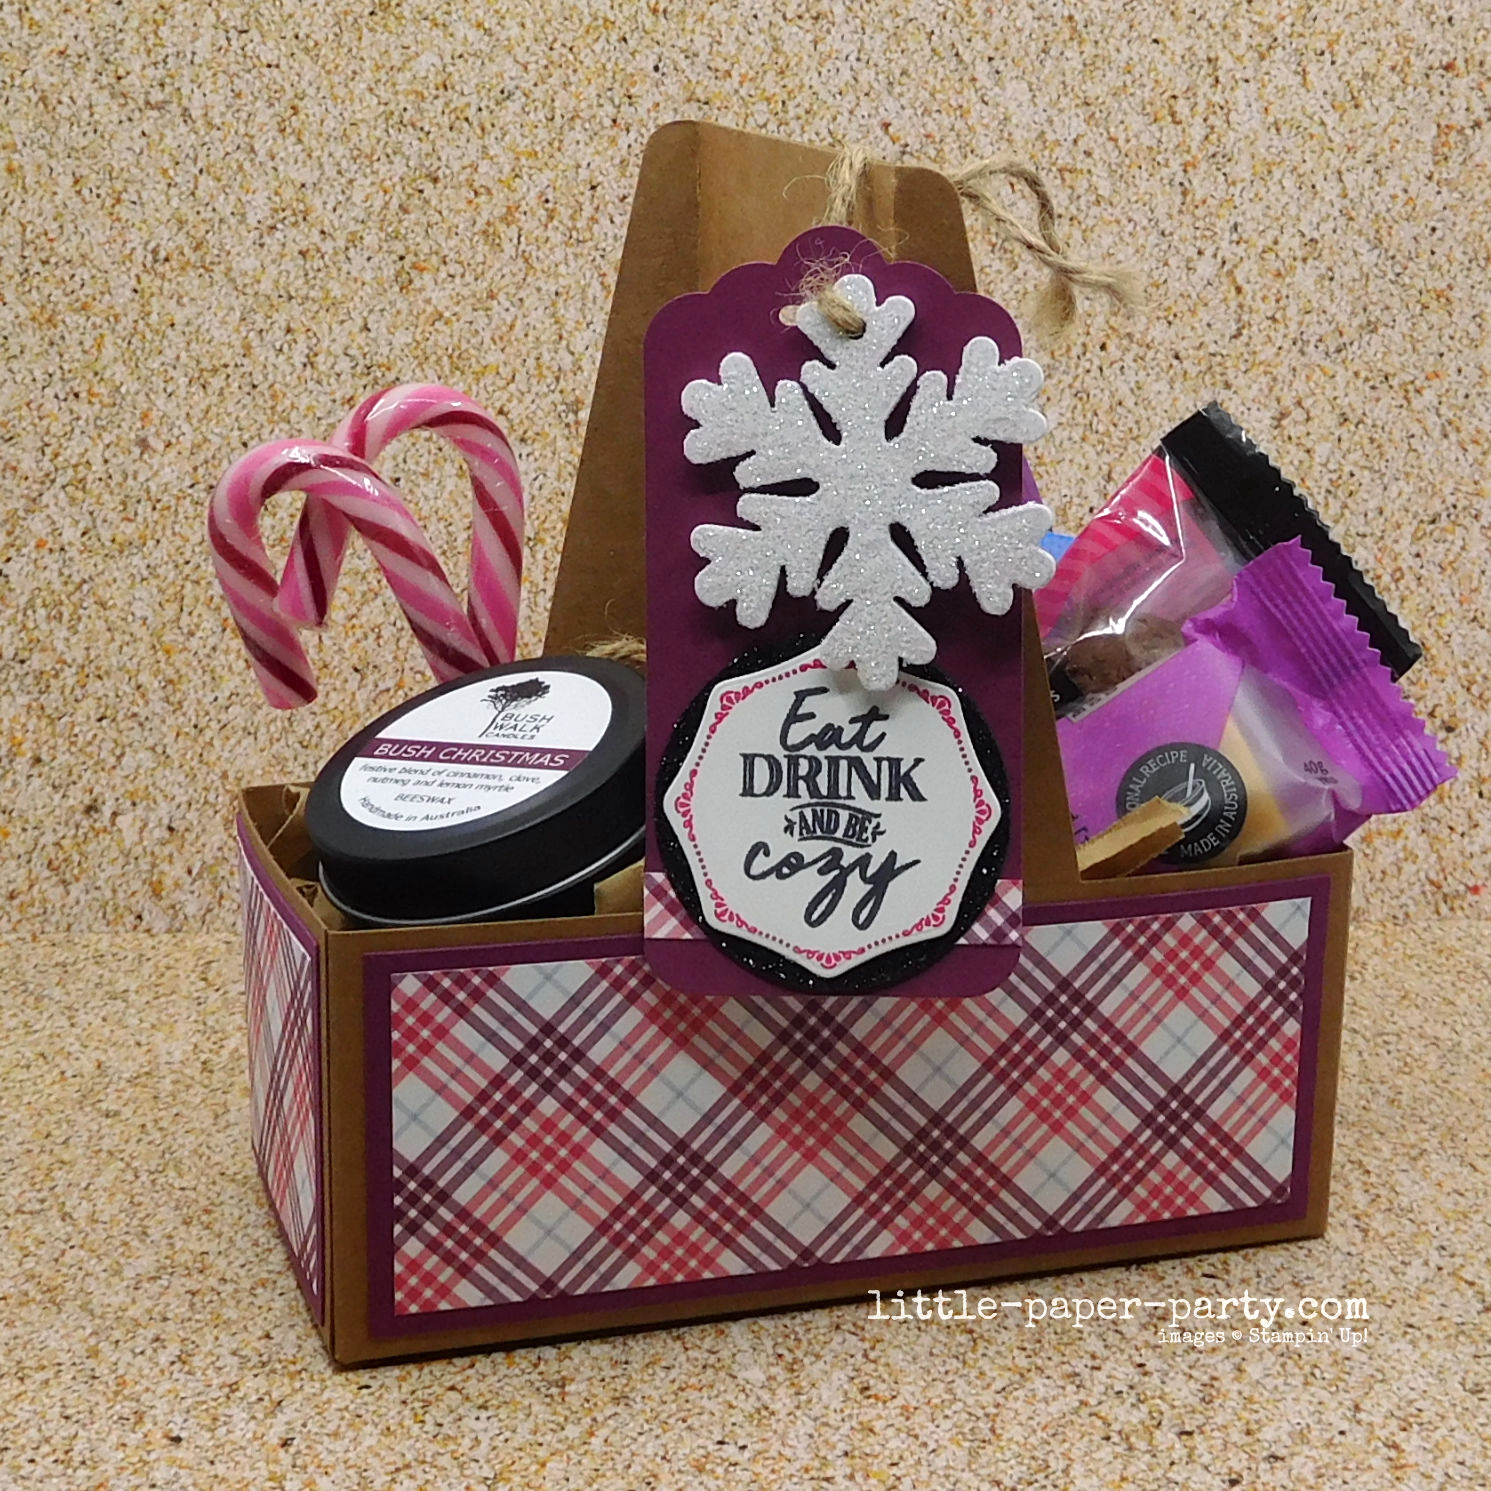 Little Paper Party, 12 Days of Christmas 2020 - Teacher Gifts, 2 (1)